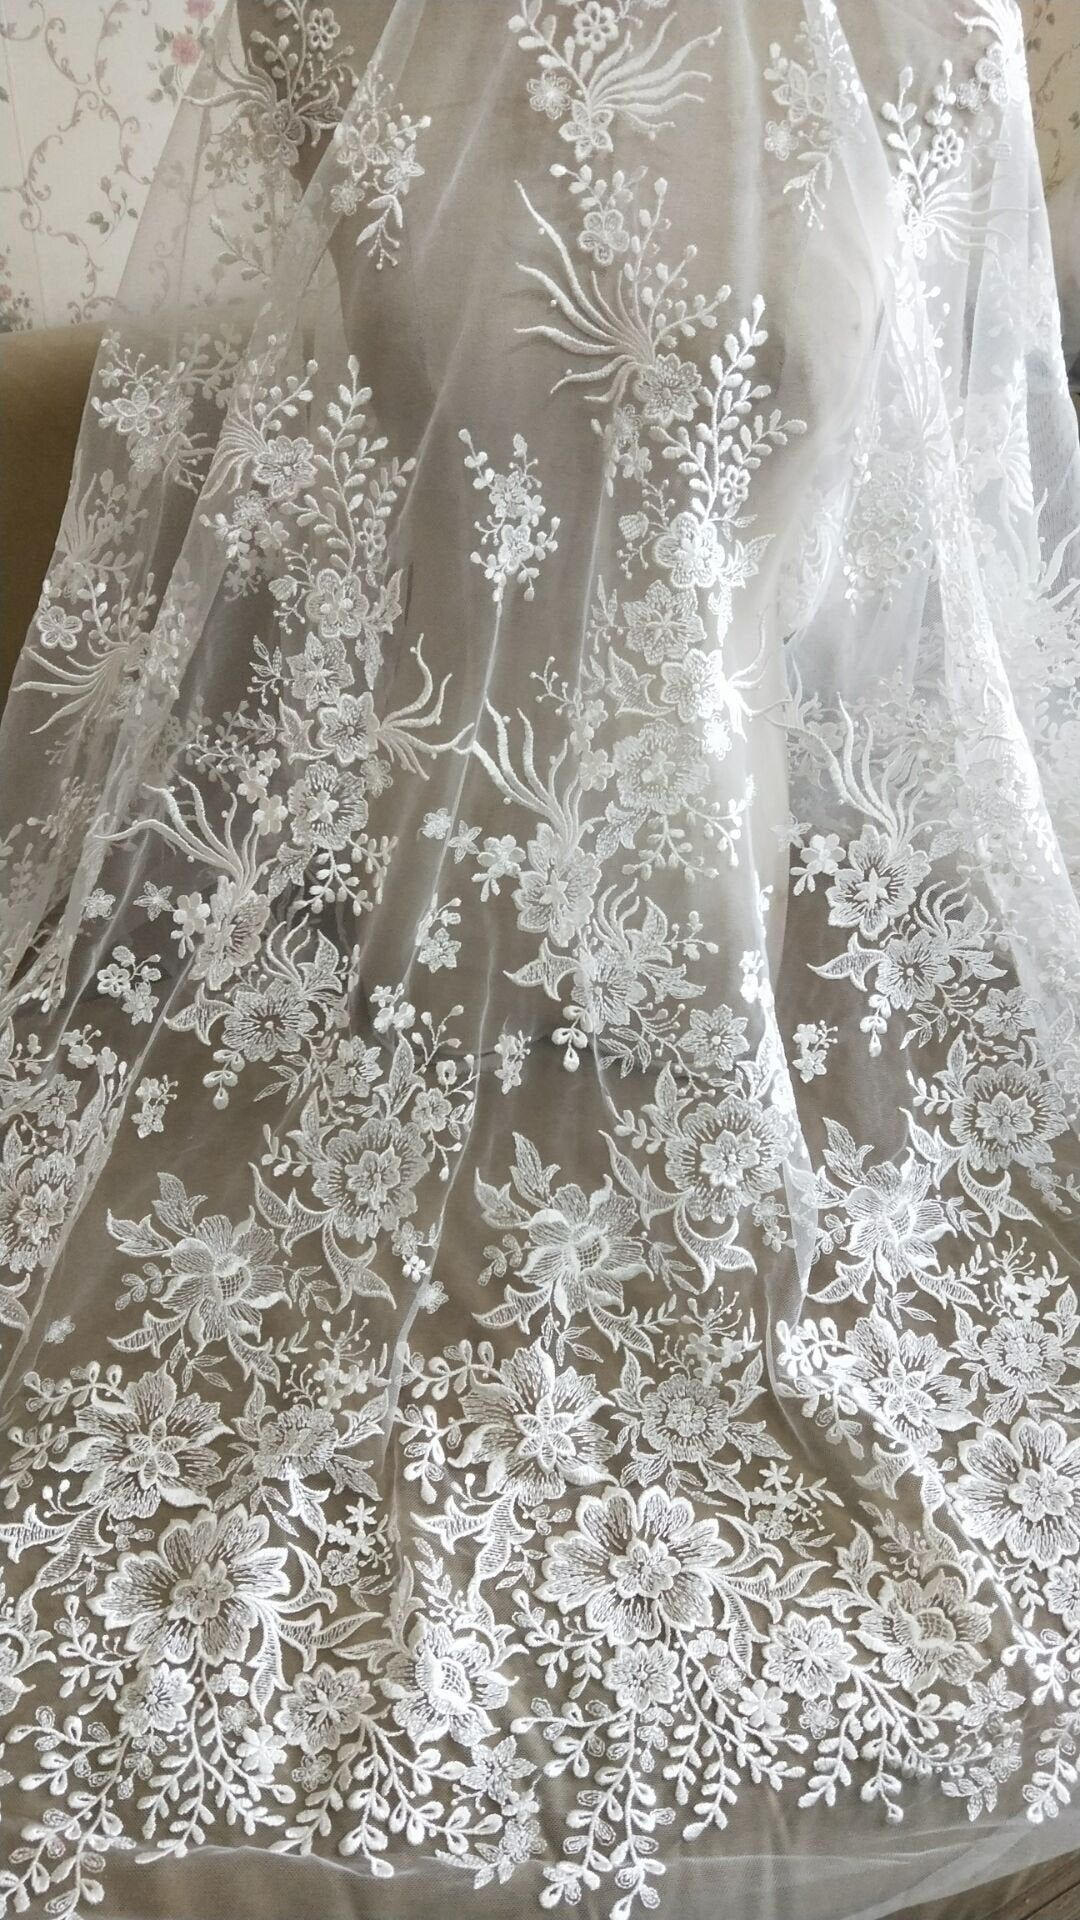 Bridal Lace Fabric Embroidery Flower Lace Tulle Lace Fabric 51 inches Width for Wedding Dress Bride Gown